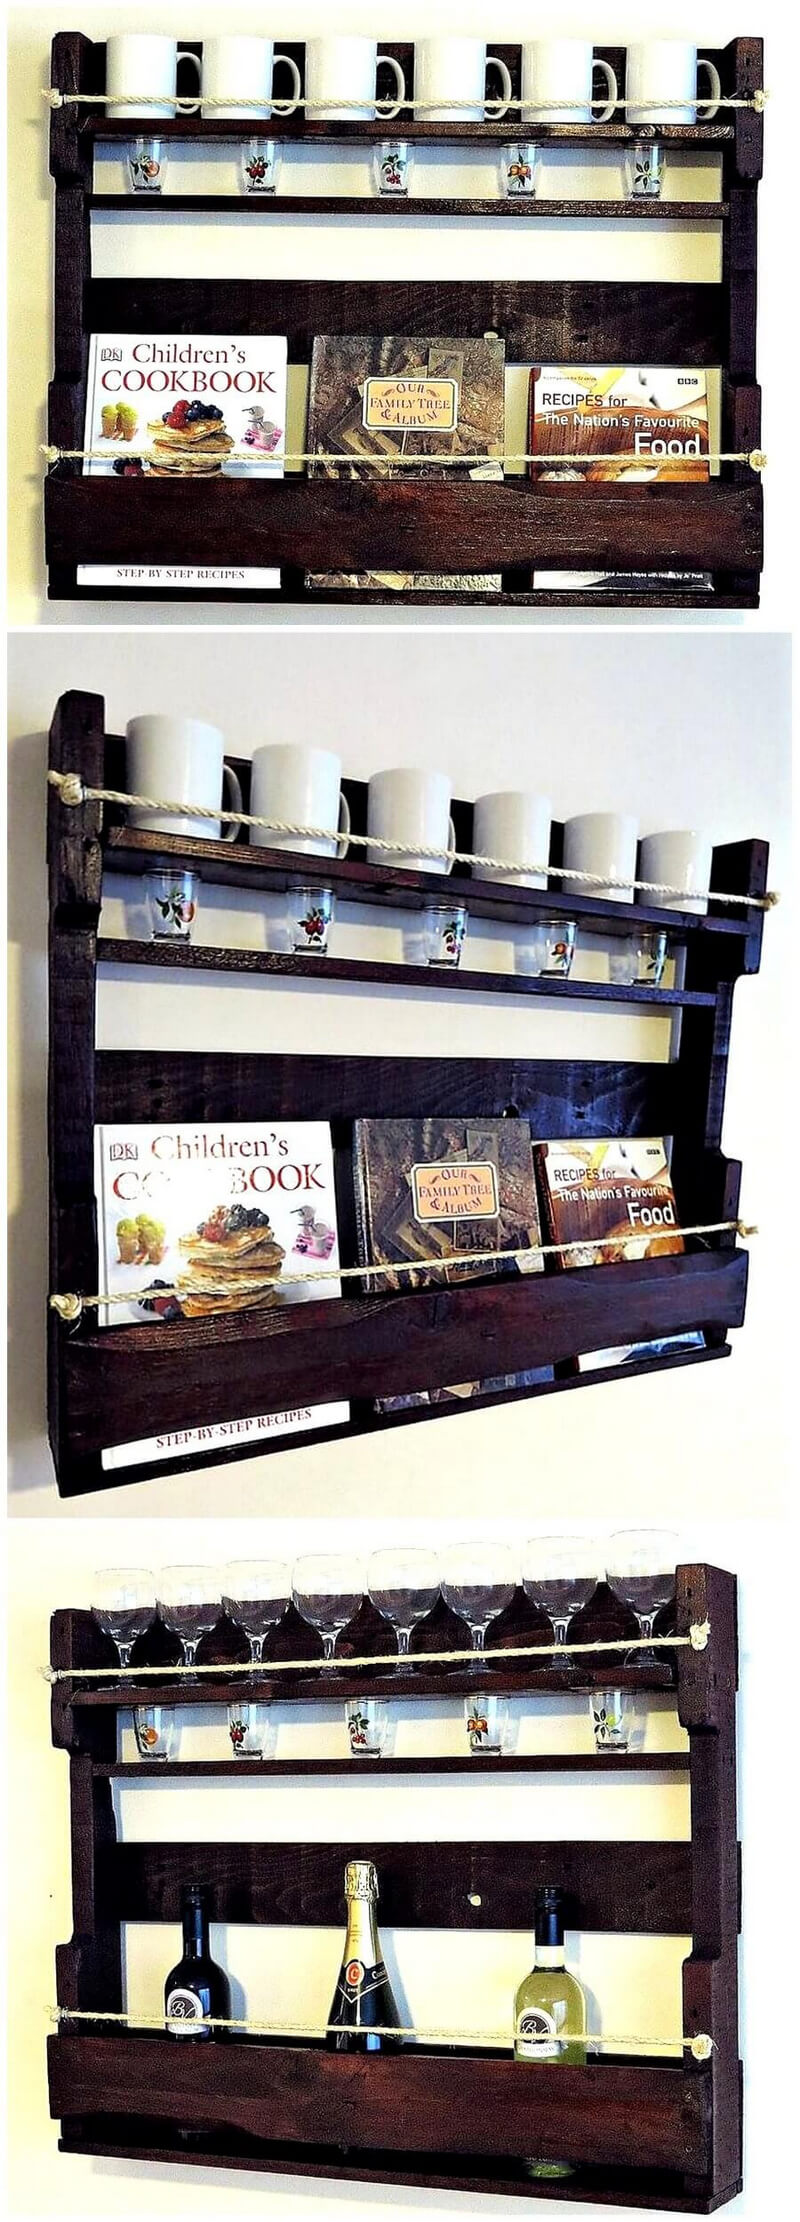 pallets kitchen shelf idea 8